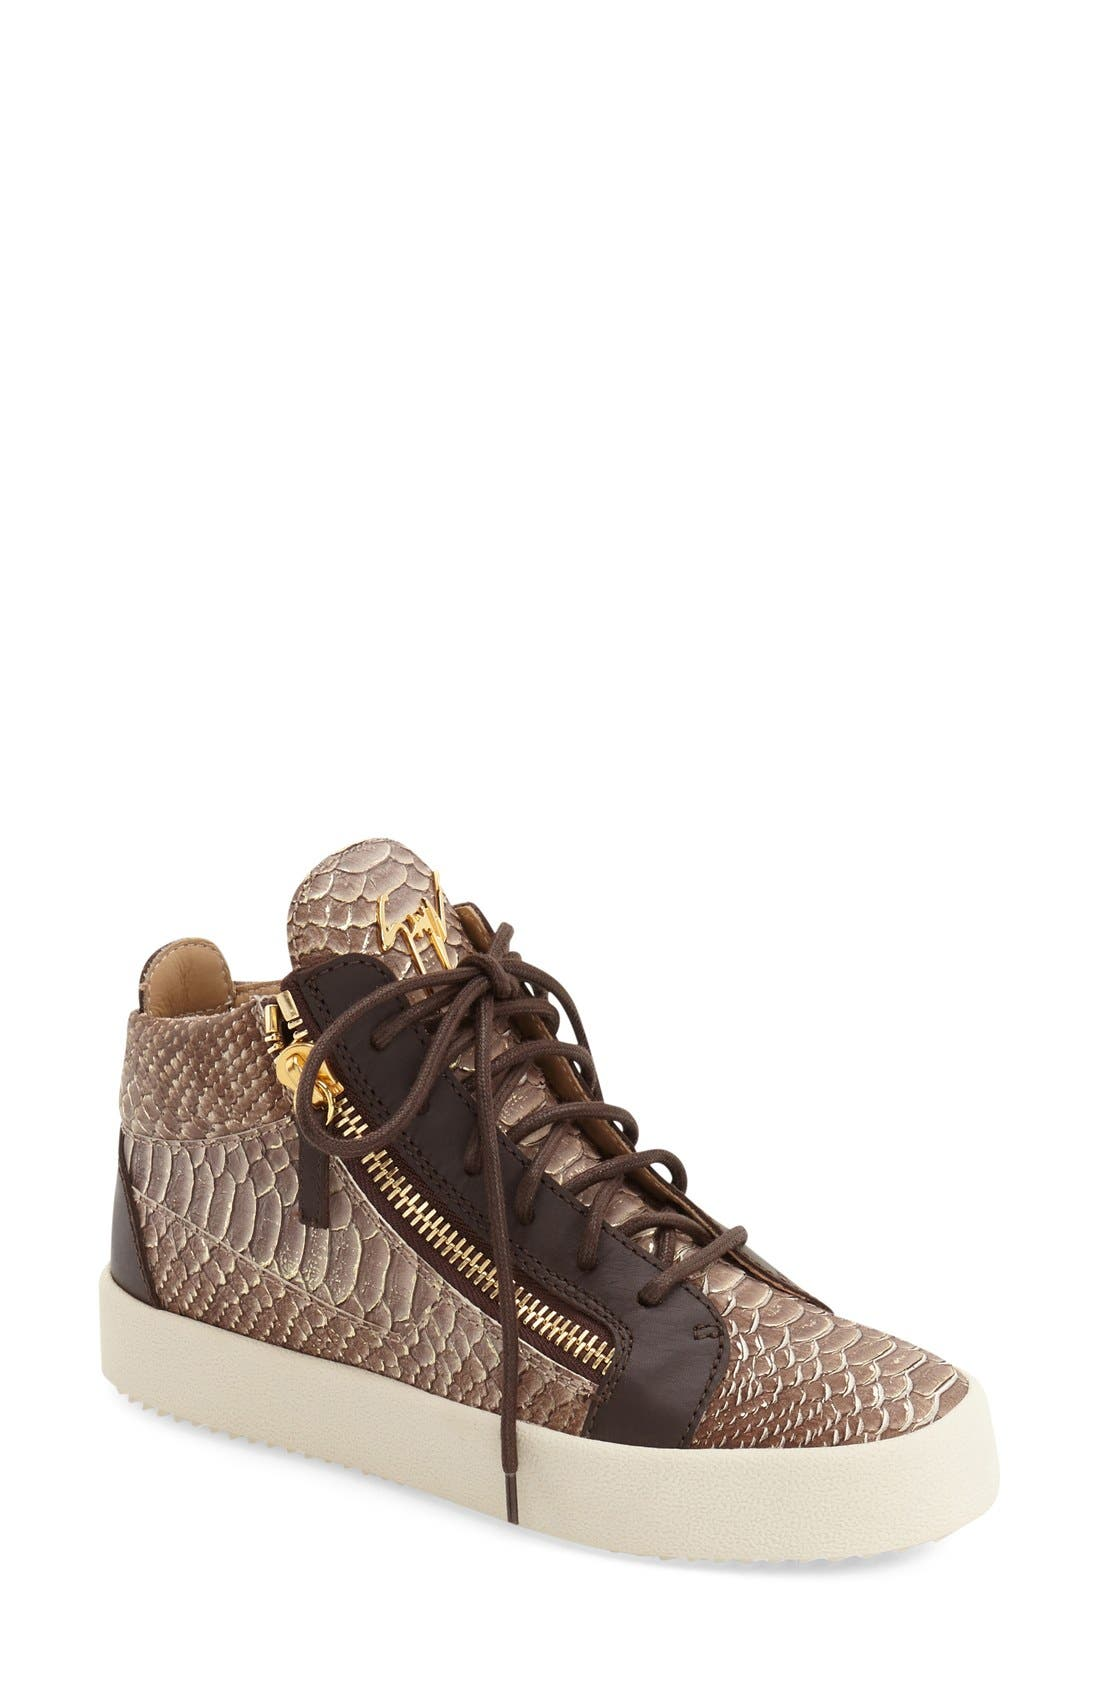 Giuseppe Zanotti 'May London' High Top Sneaker (Women)